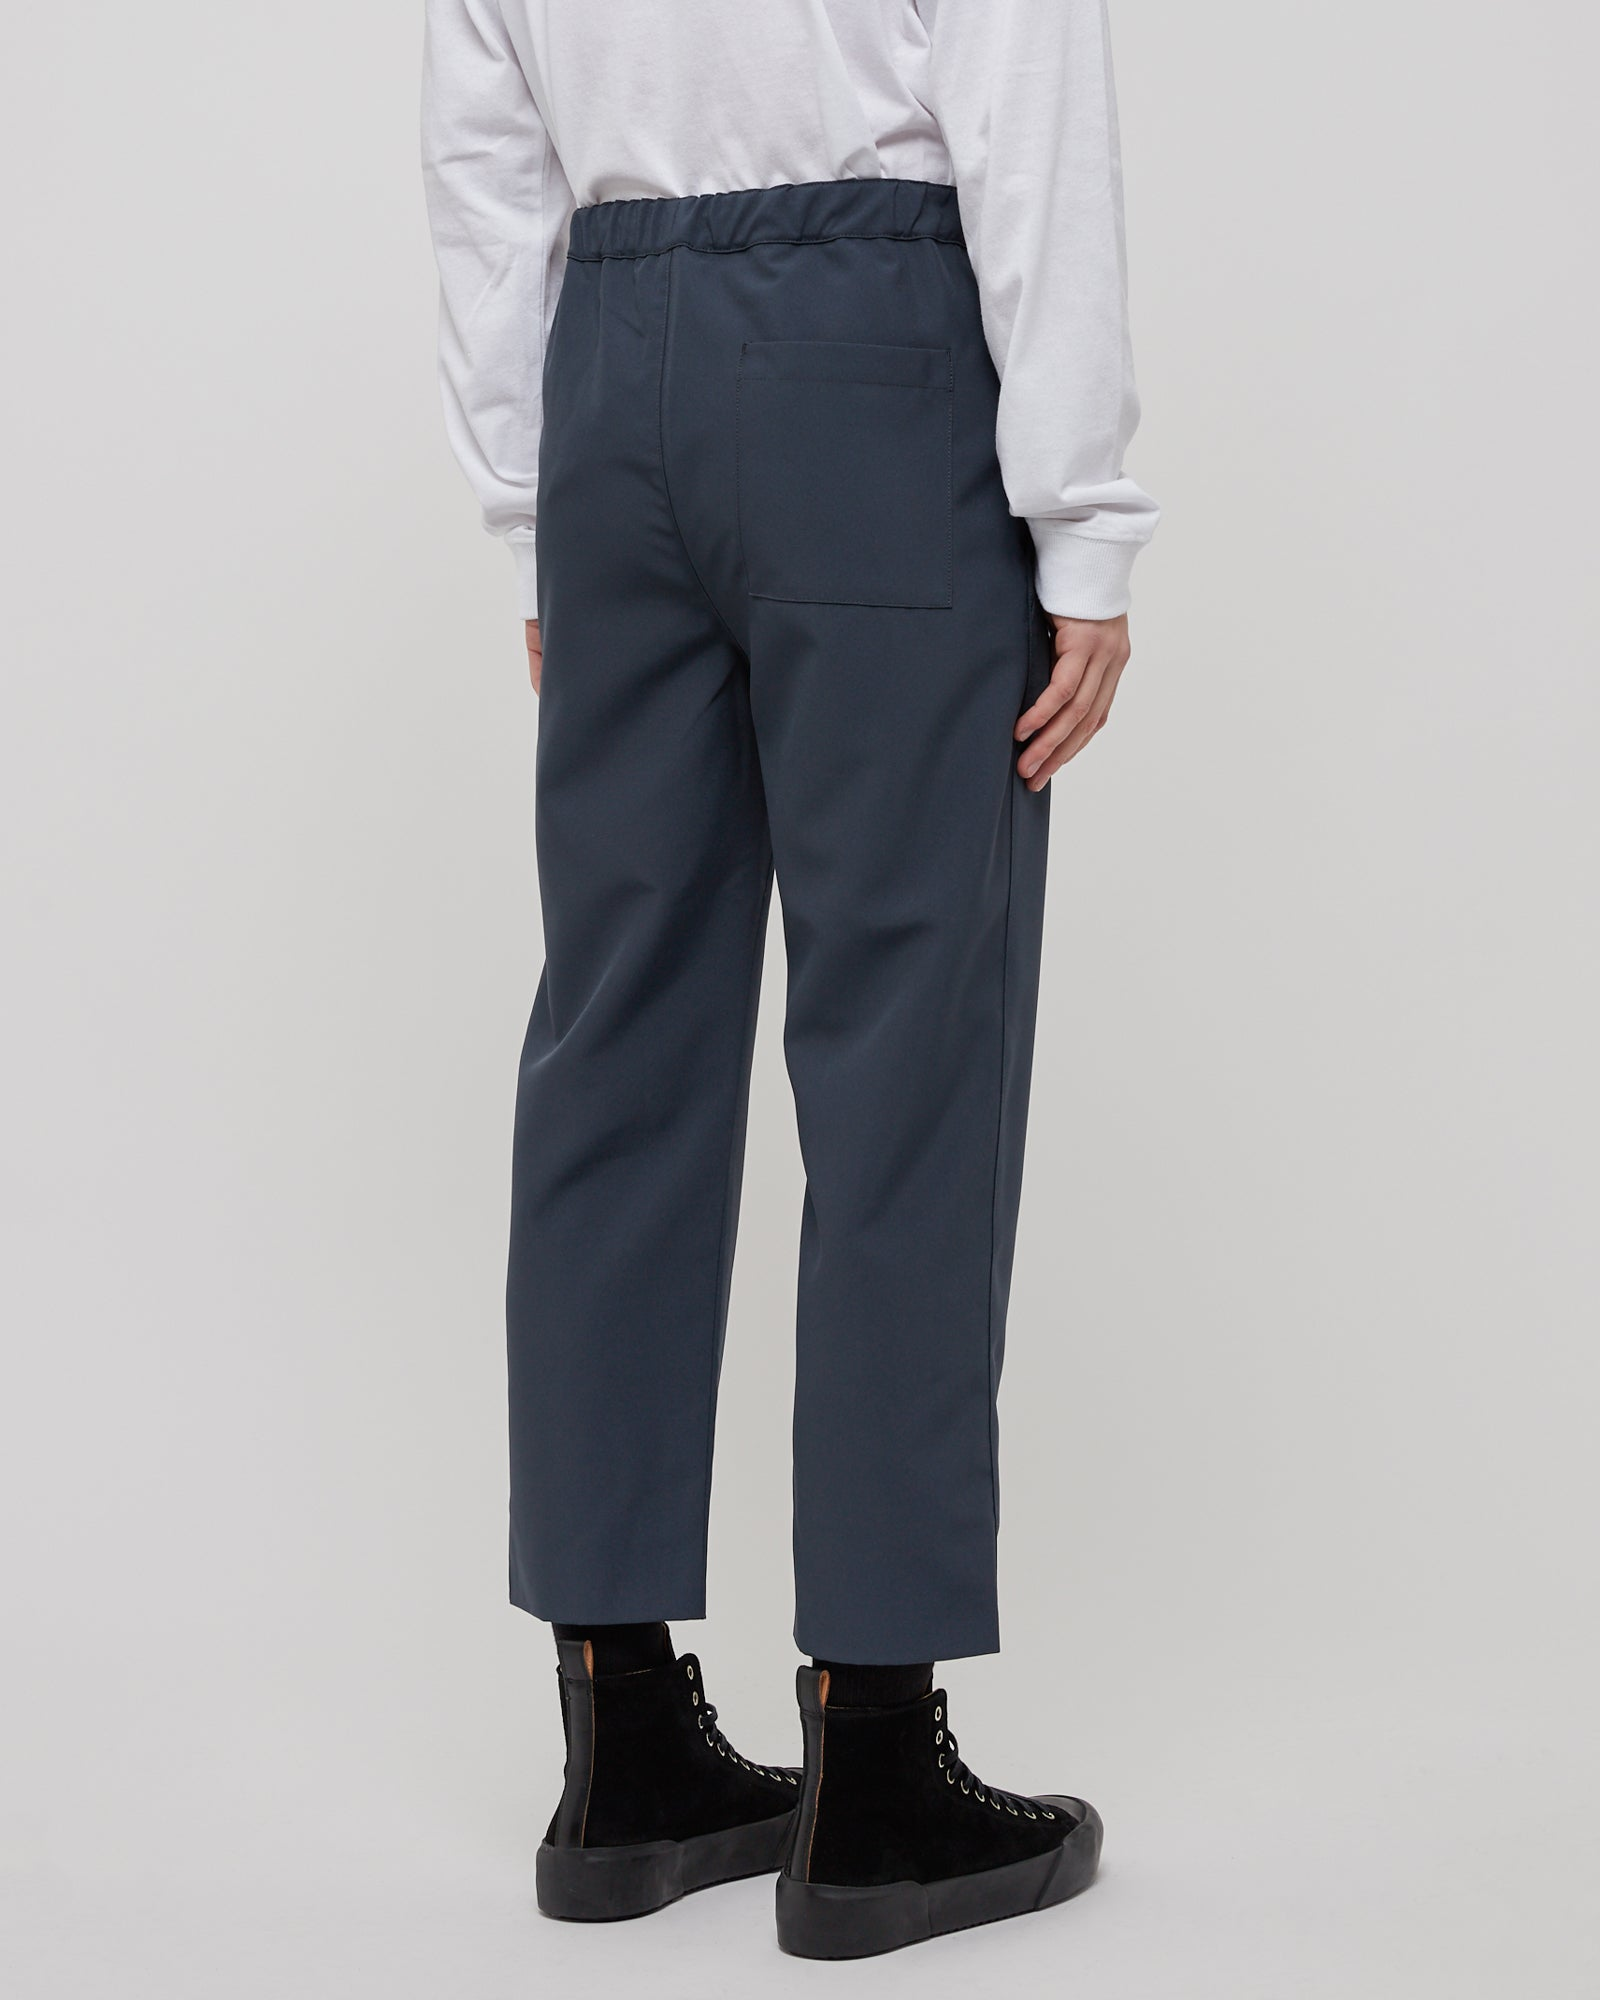 Drawcord Pant in Charcoal Blue